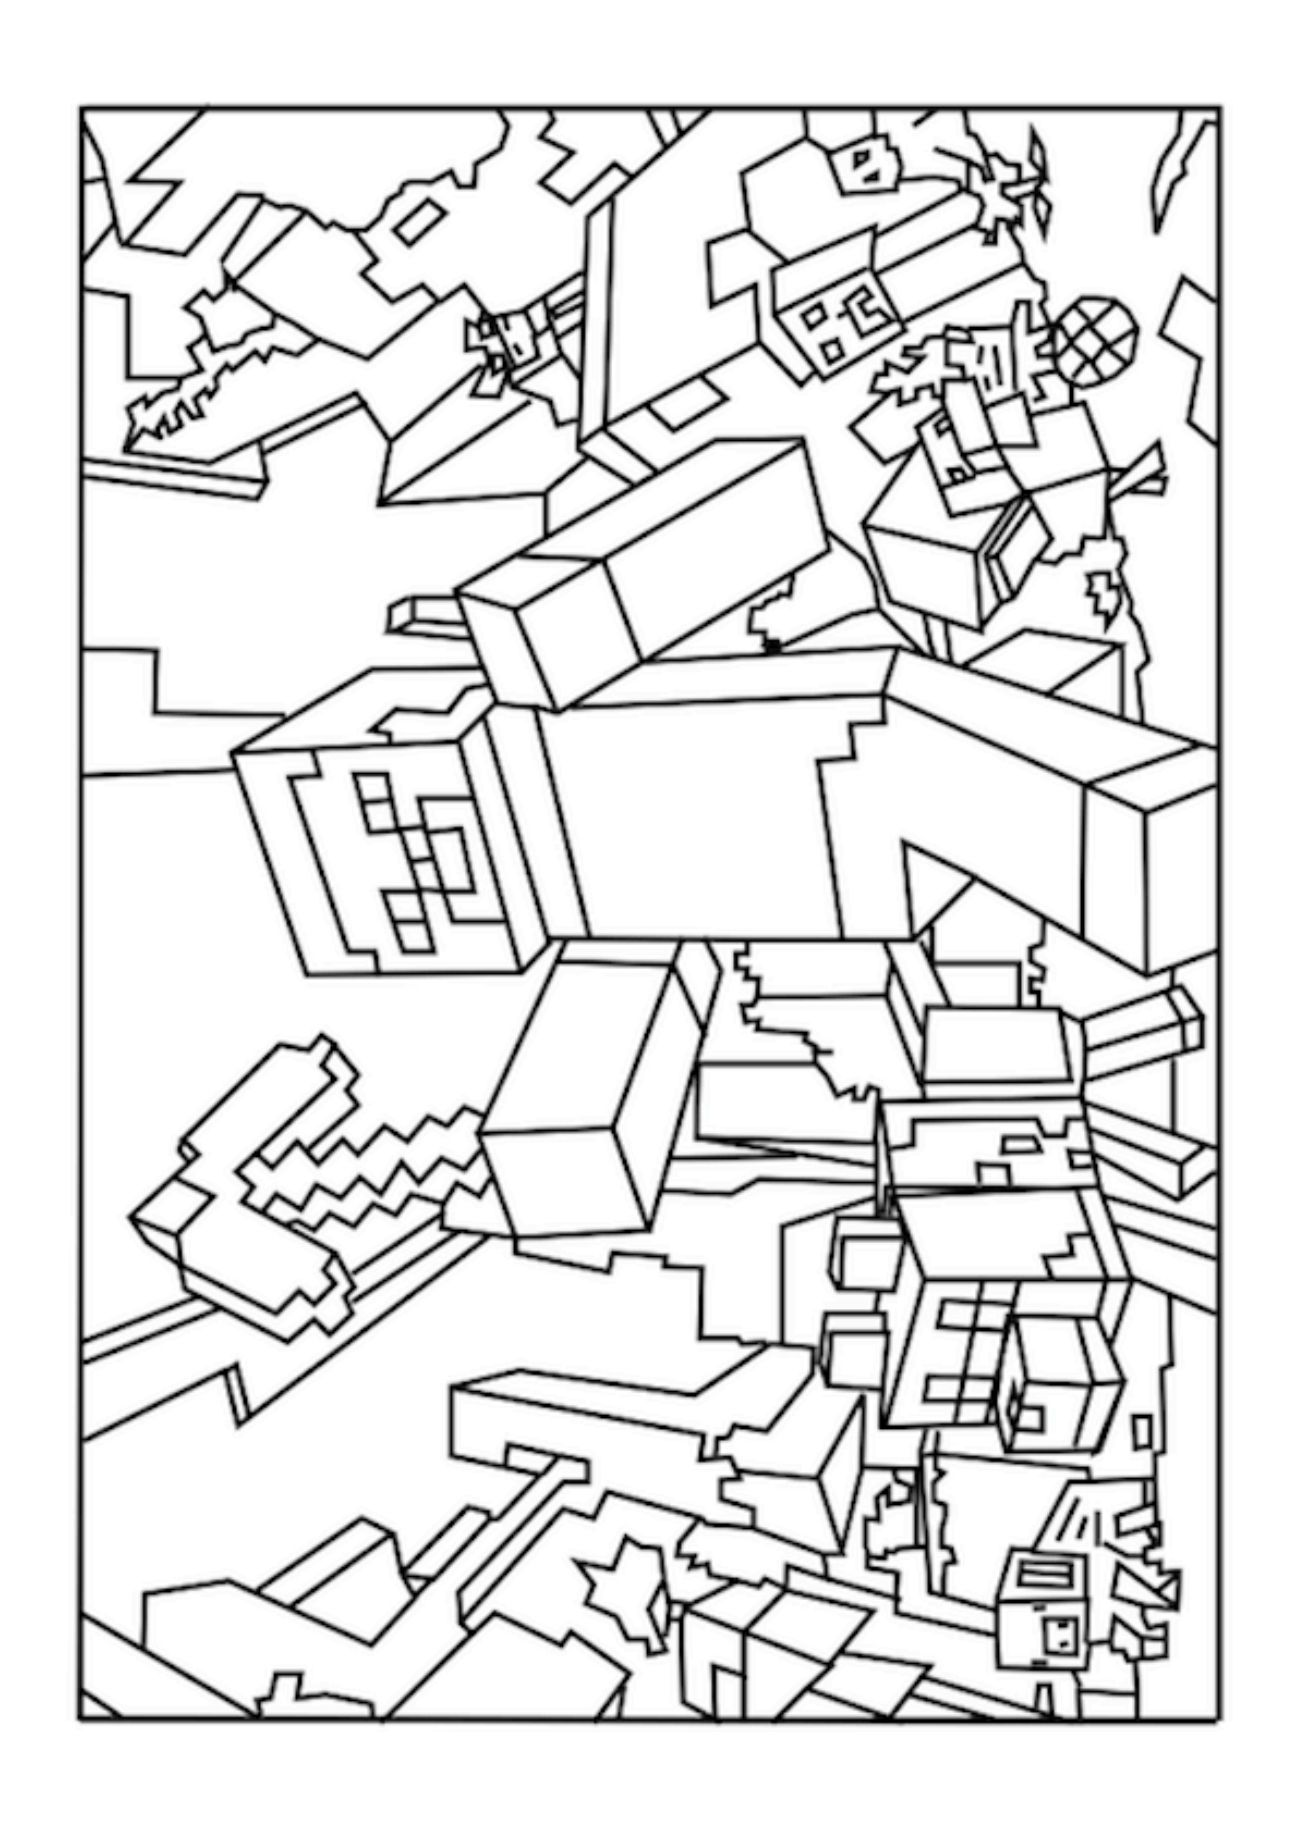 free printable minecraft coloring pages minecraft free to color for kids minecraft kids coloring pages free printable minecraft coloring